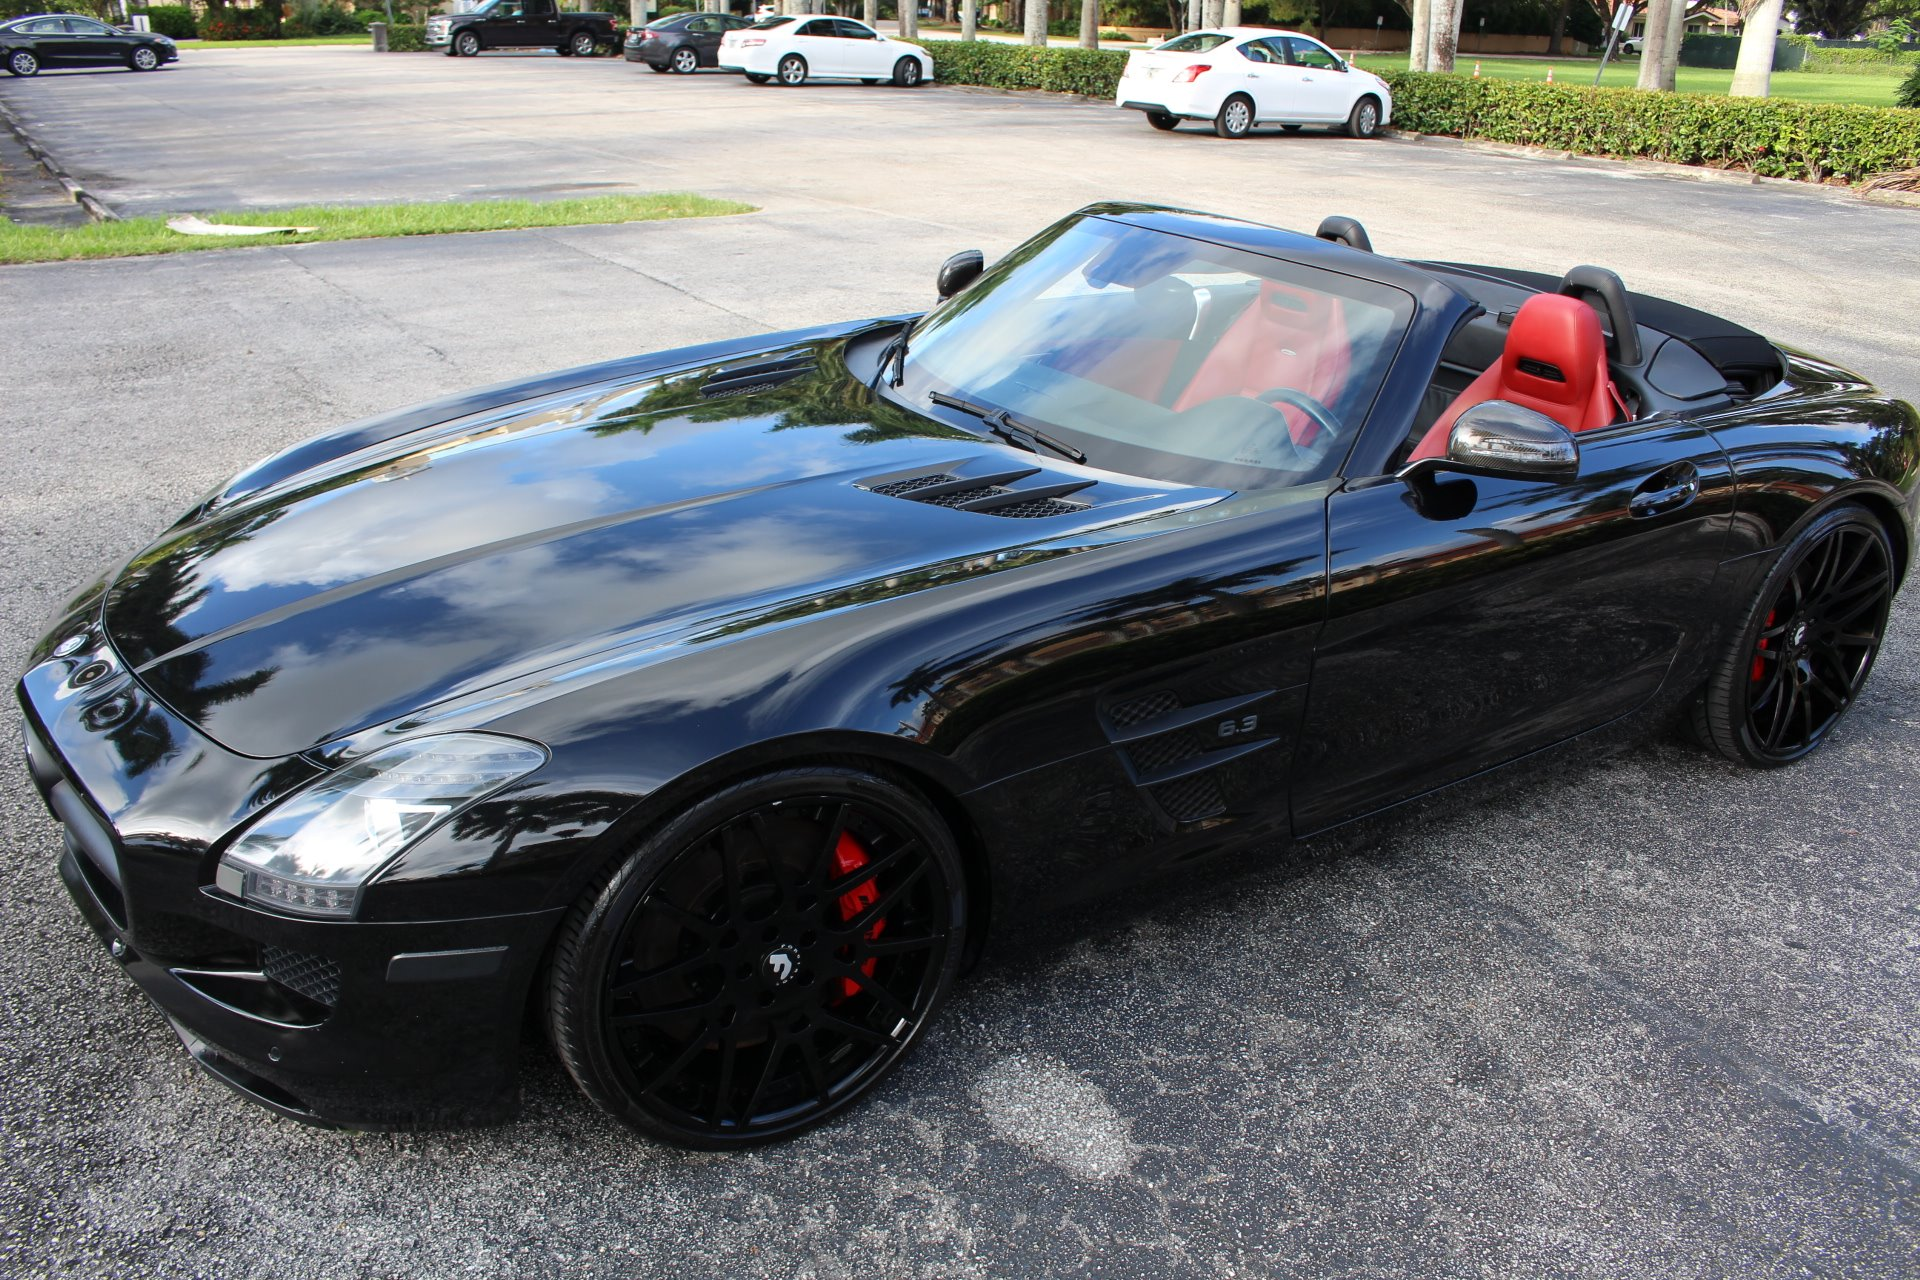 Mercedes Benz Sls Amg For Sale >> Used 2012 Mercedes Benz Sls Amg For Sale 95 850 The